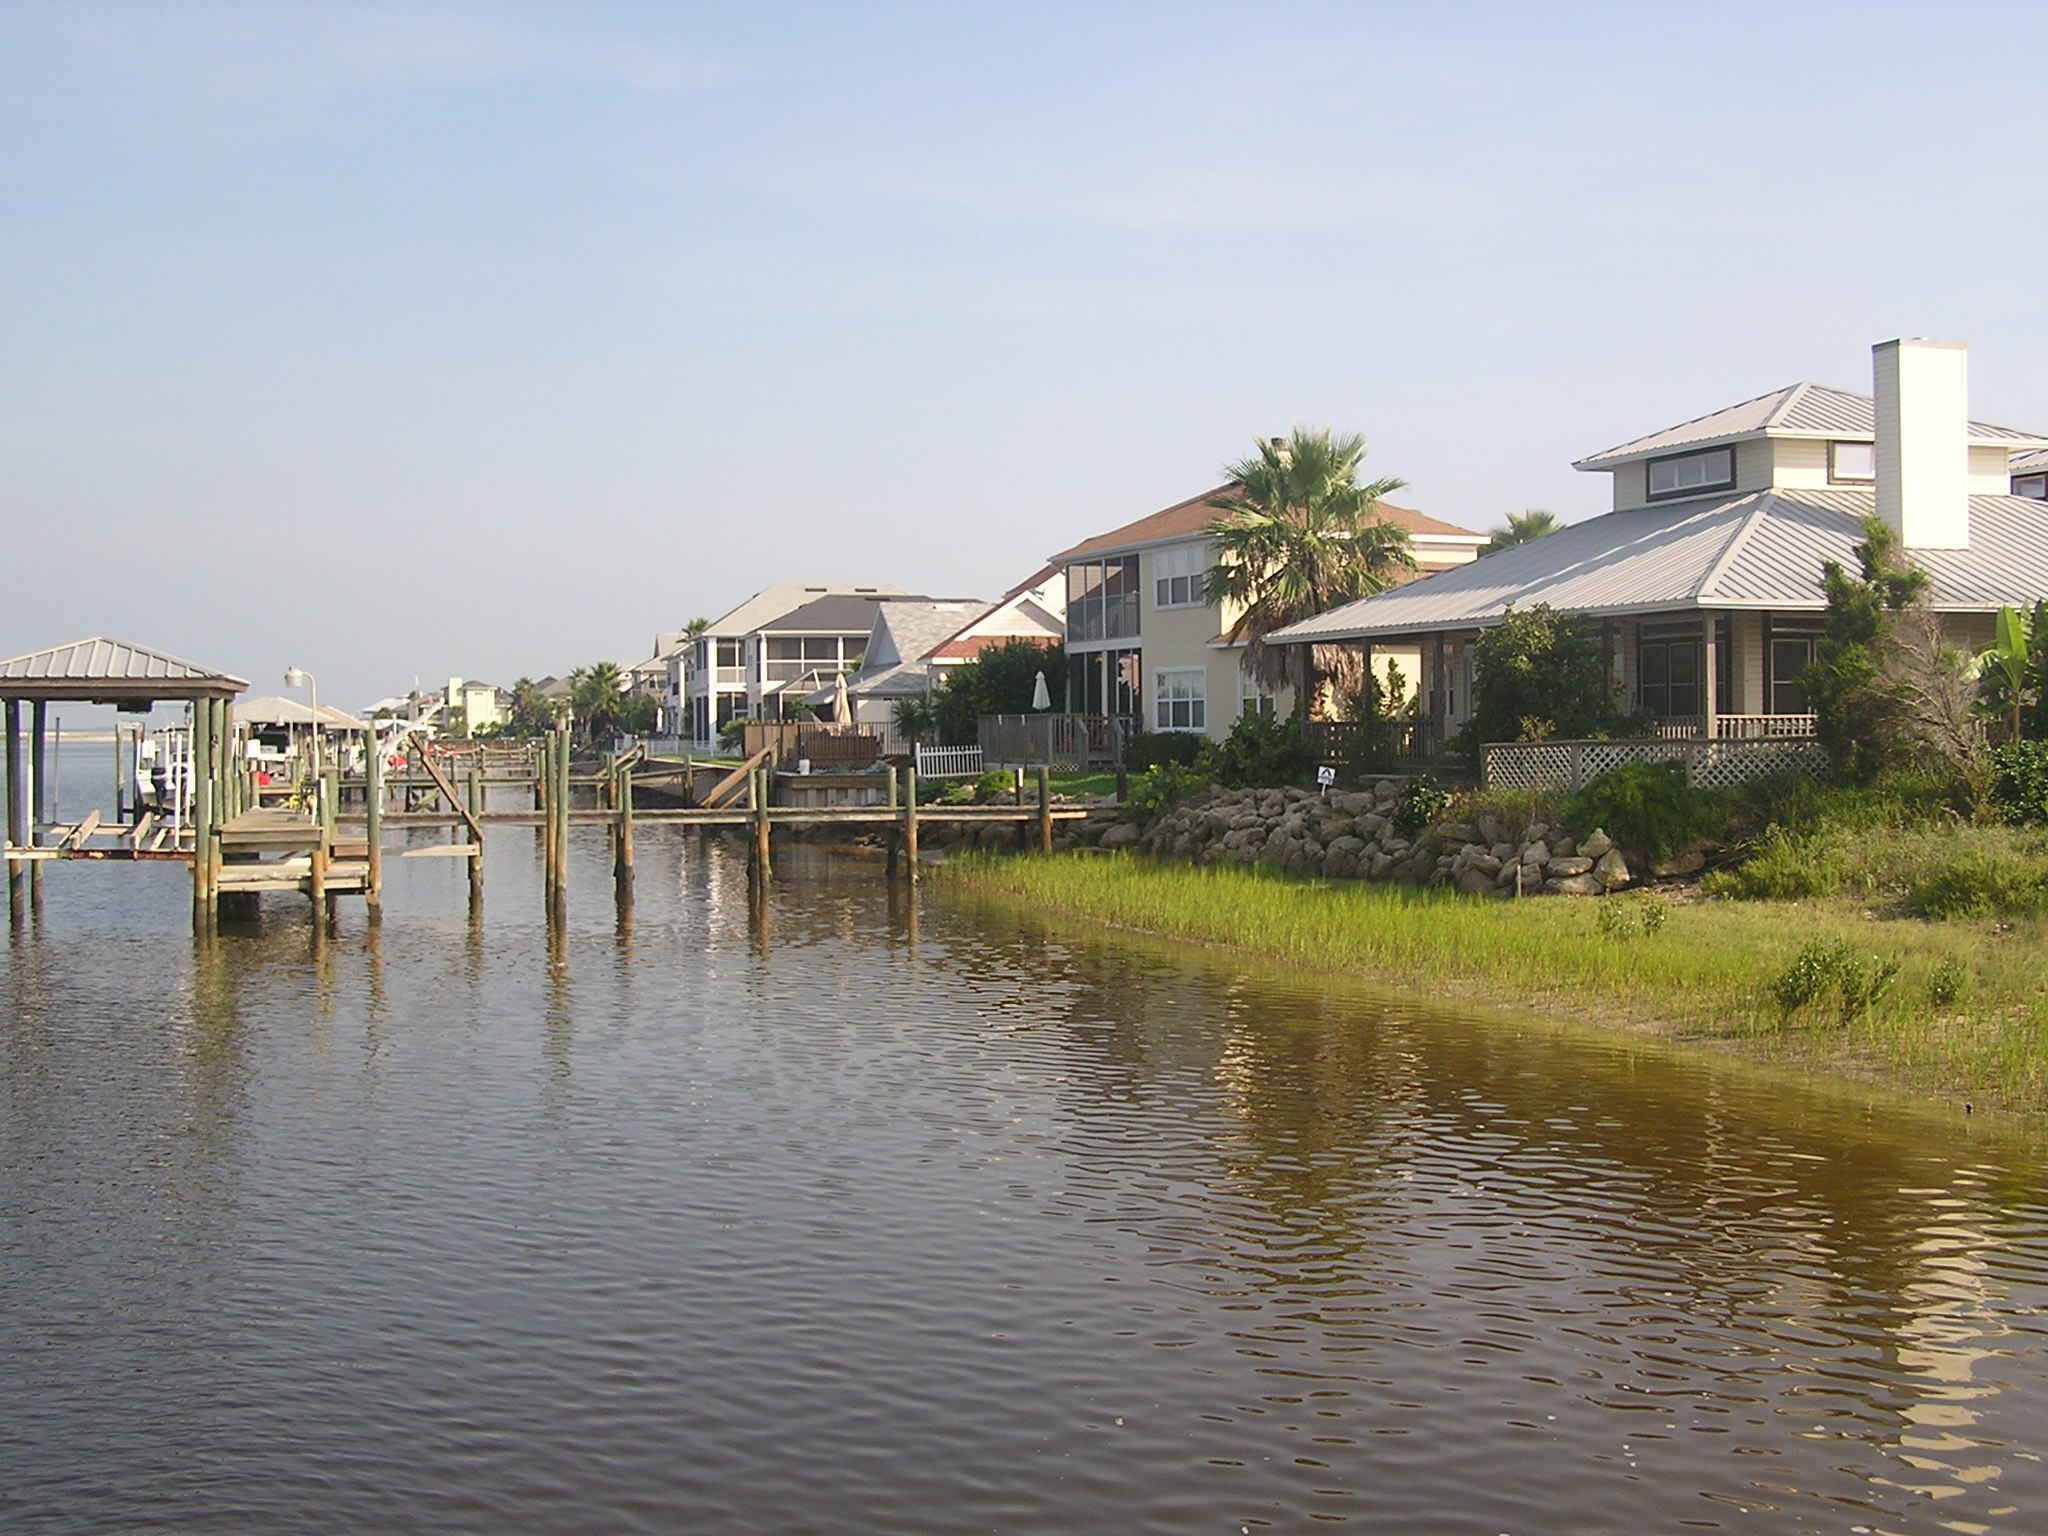 Real Estate For Sale In St Augustine Beach Florida